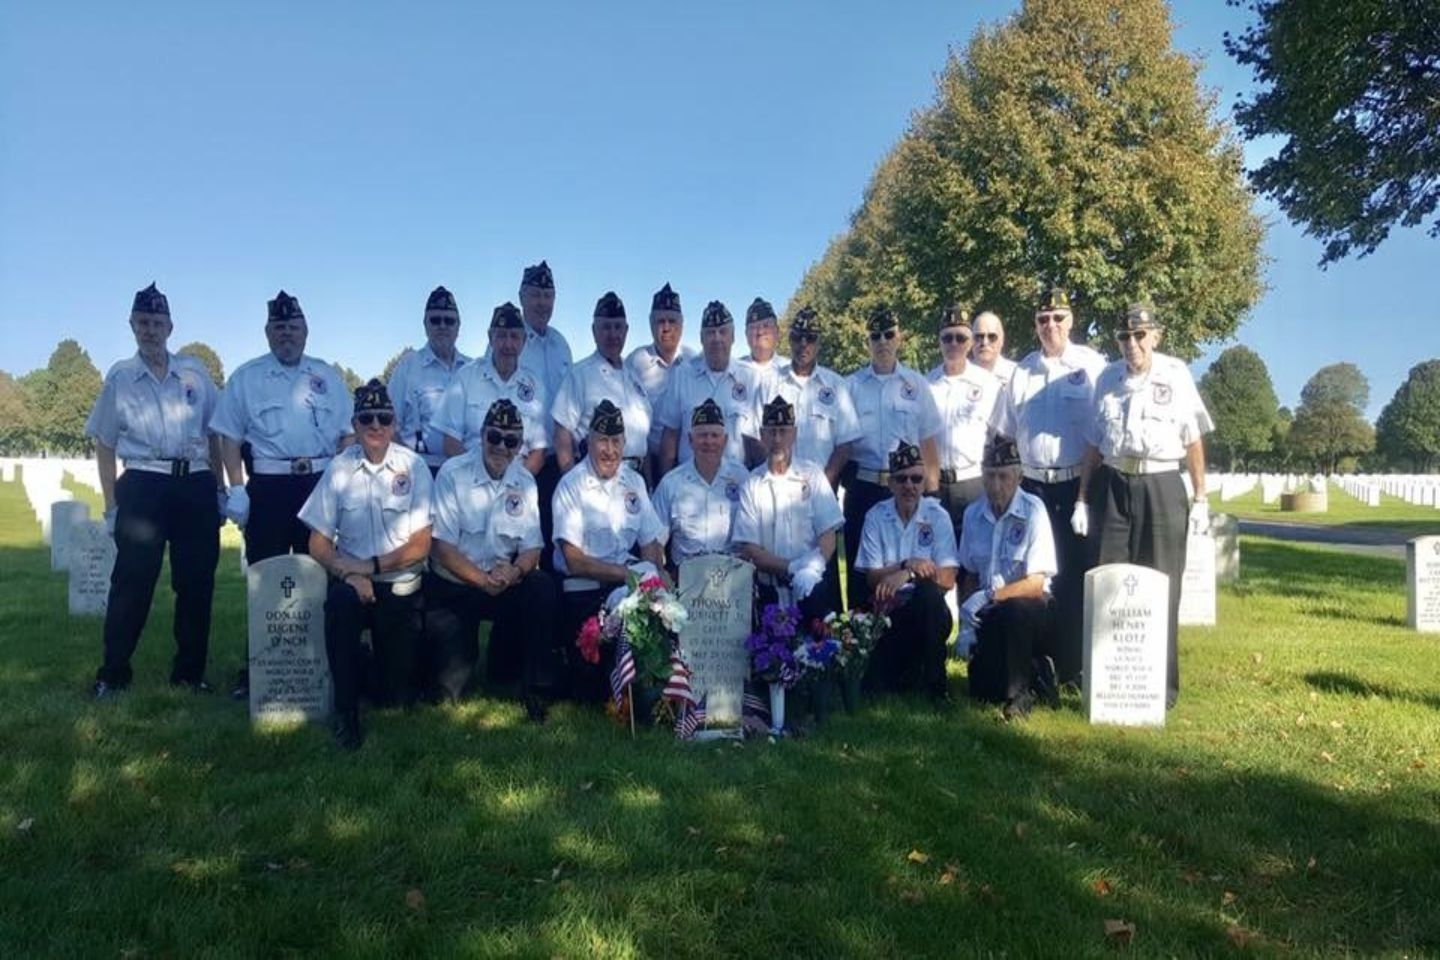 Several of our members are also part of the Fort Snelling Rifle Squad (Honor Guard).